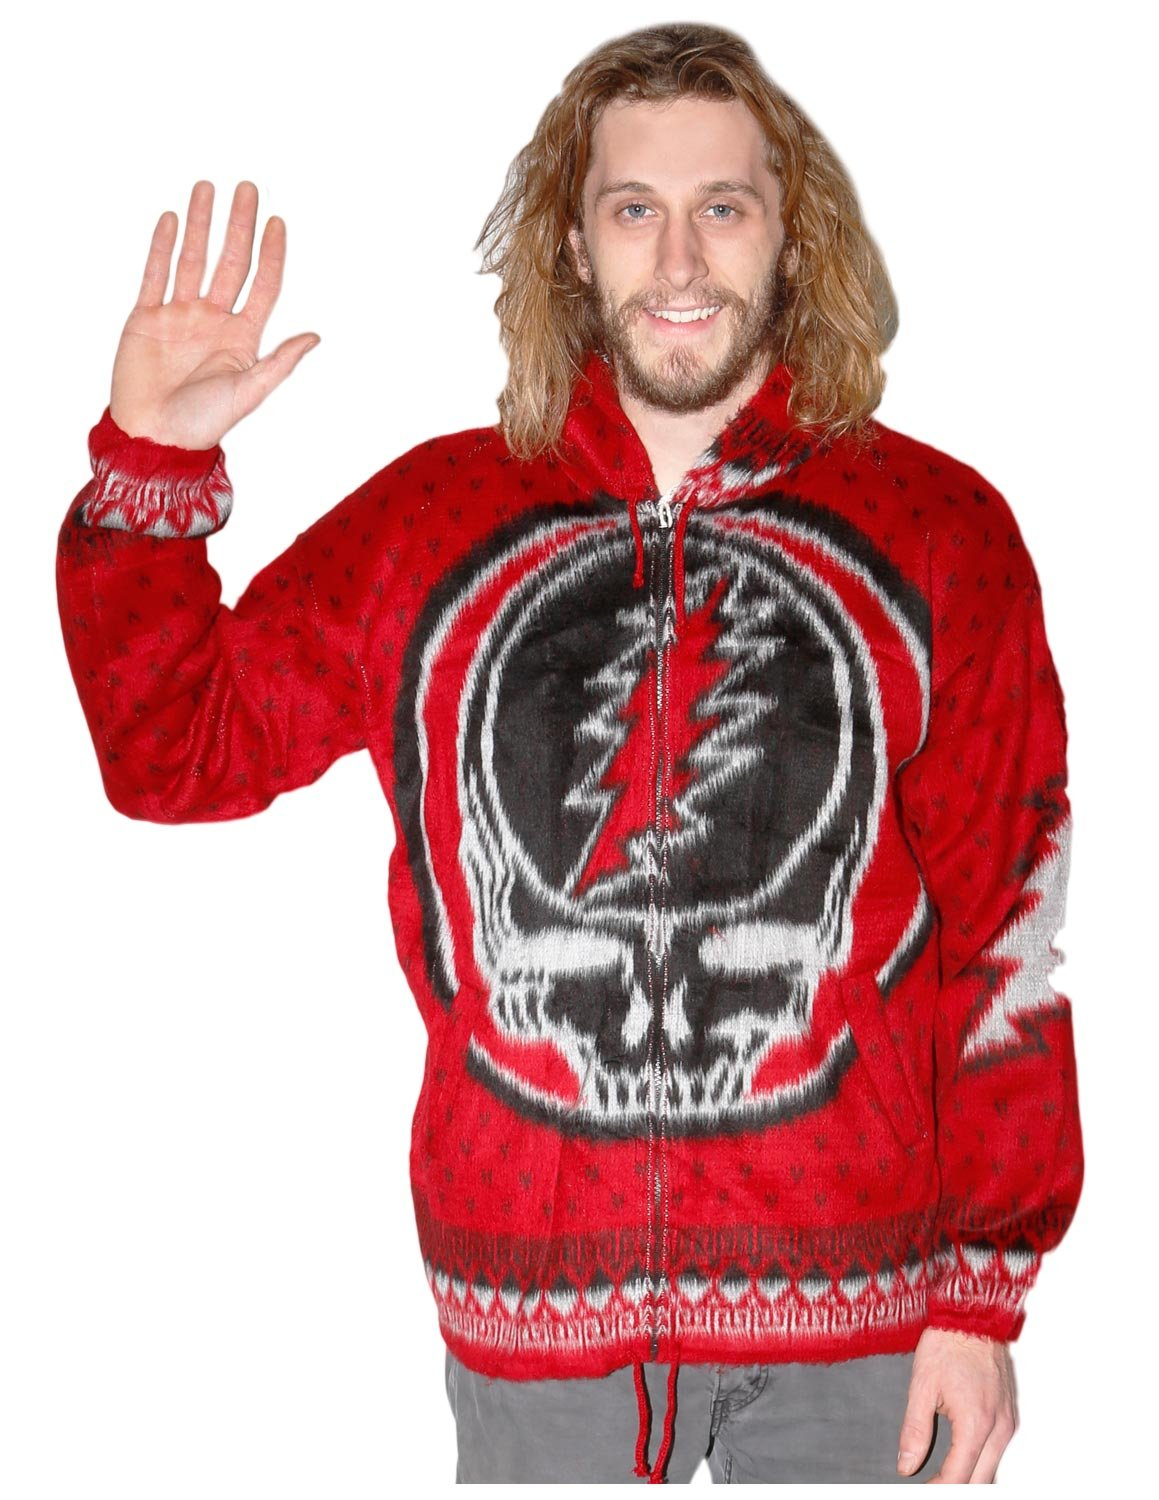 Grateful Dead Alpaca Style Zip Up Hooded Sweater Jacket Steal Your Face Ramatex GD1001-P